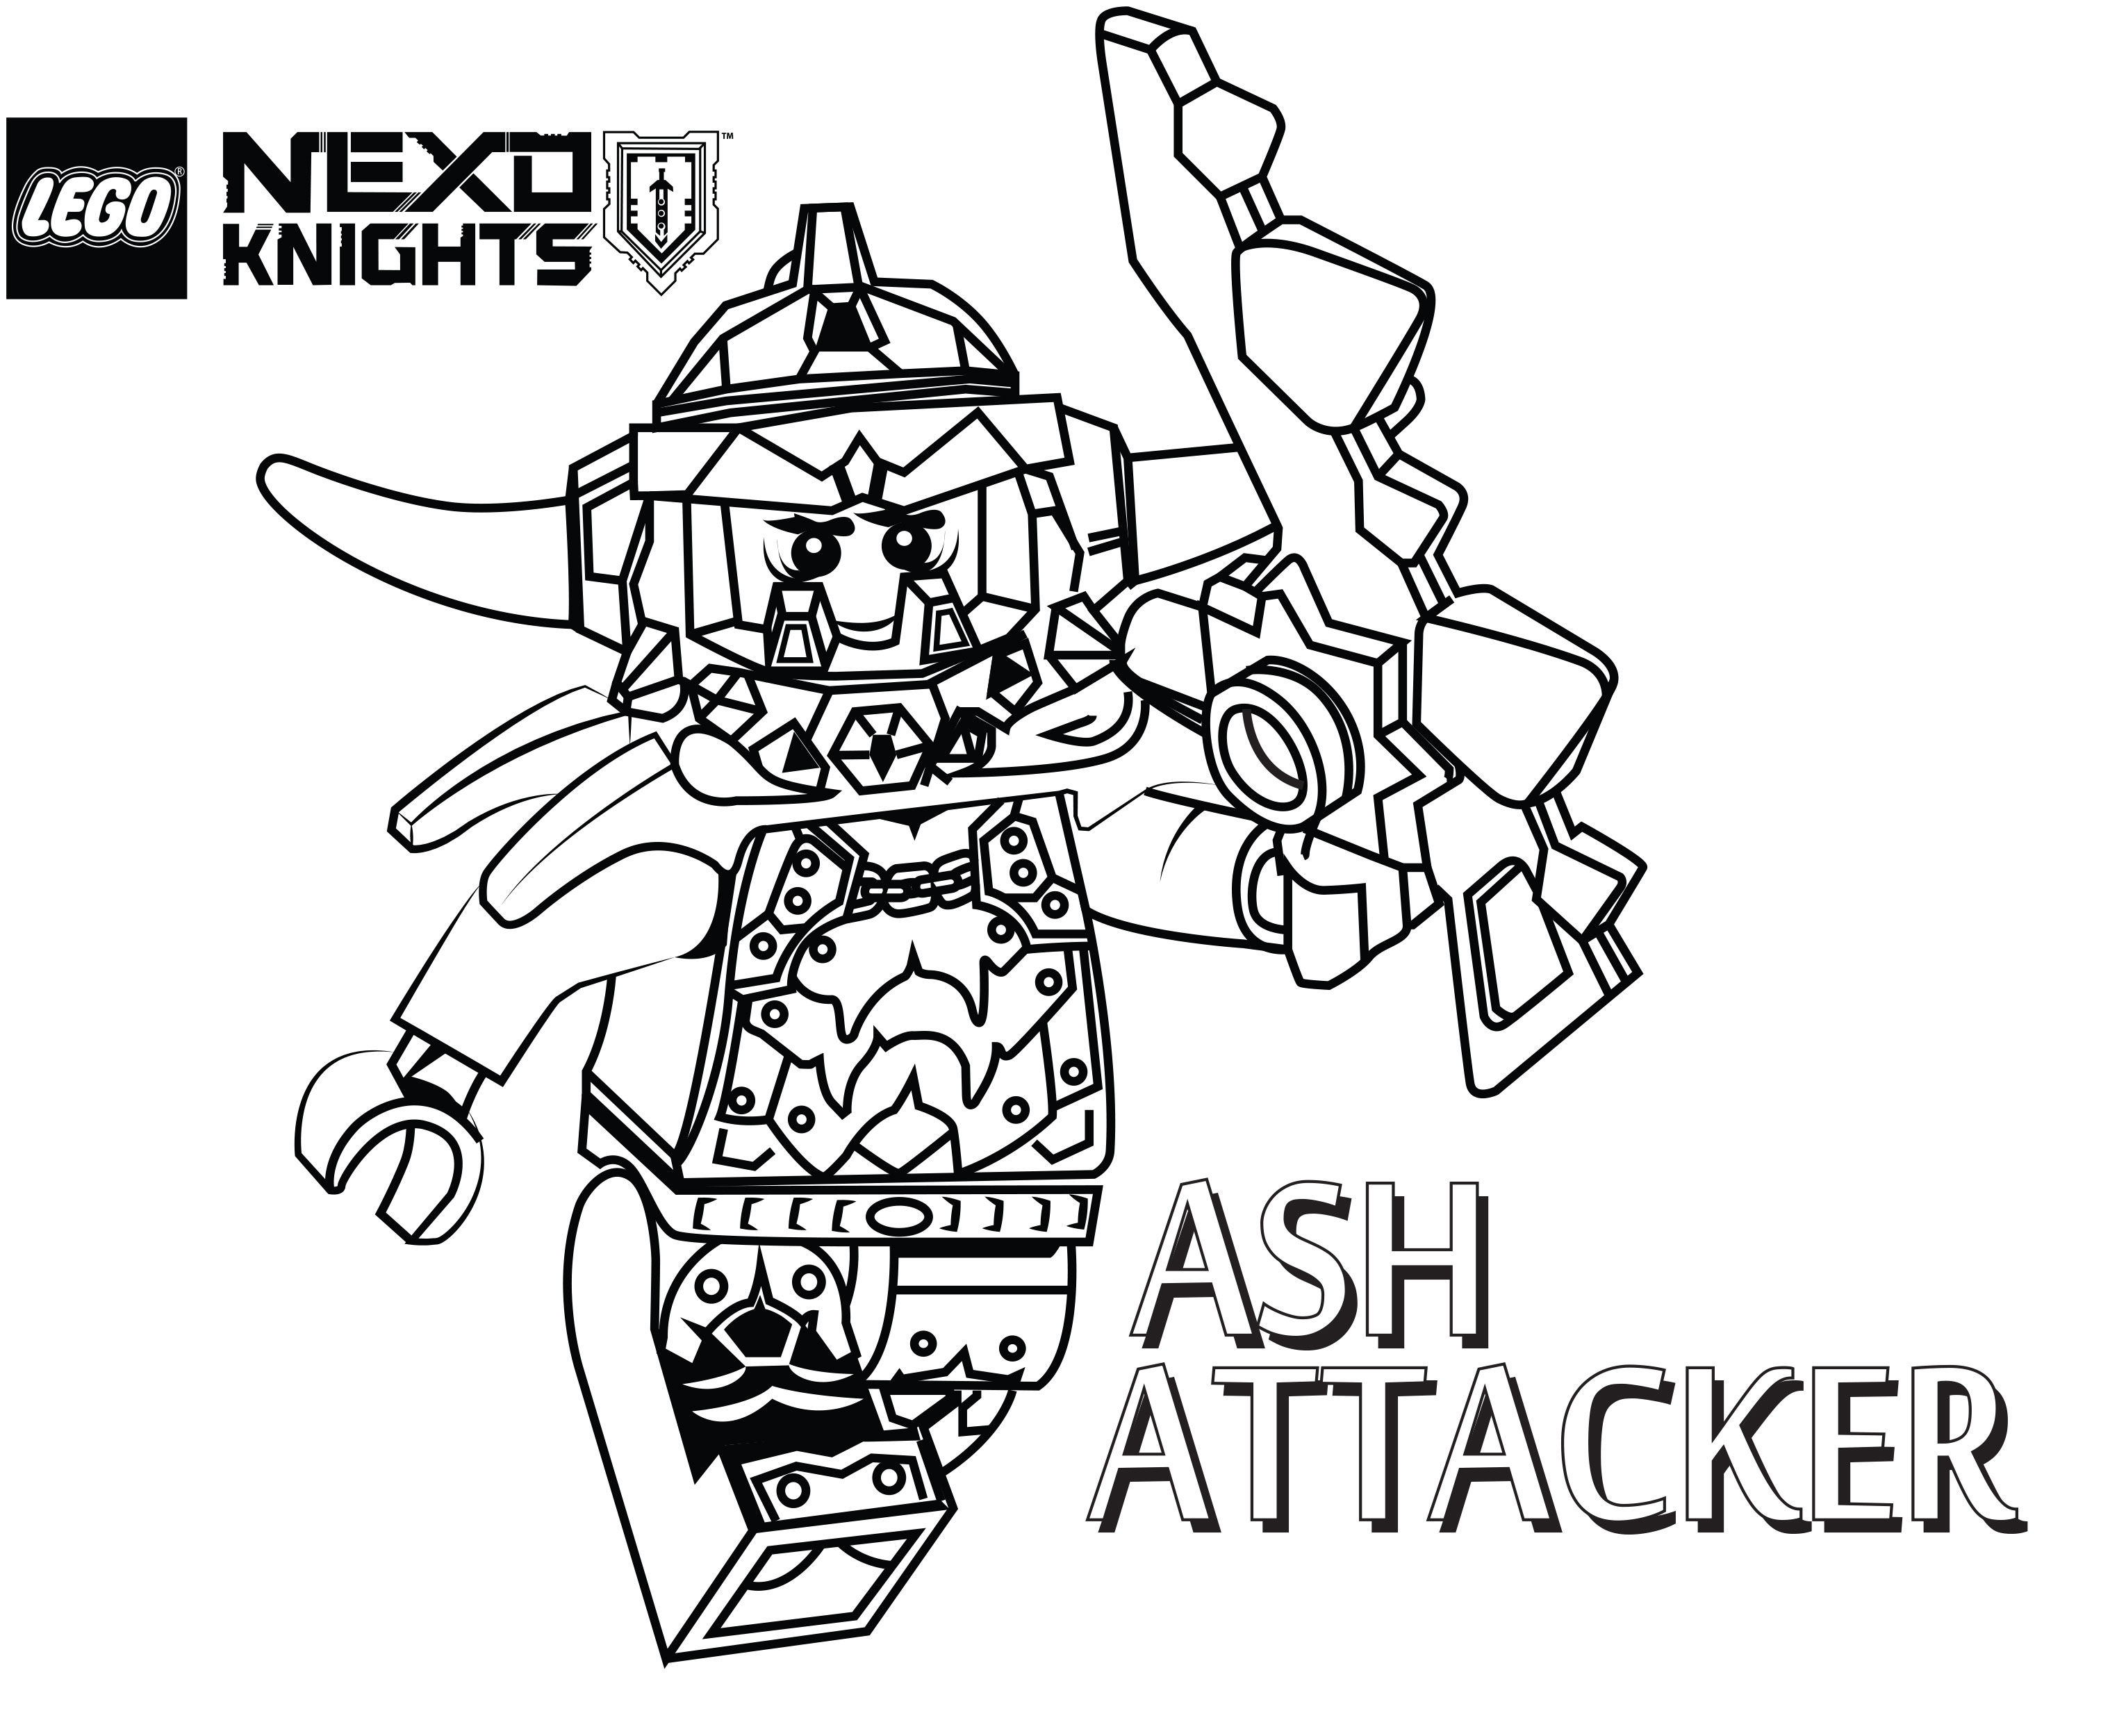 Lego Nexo Knights Coloring Pages : Image gallery lego knights coloring pages